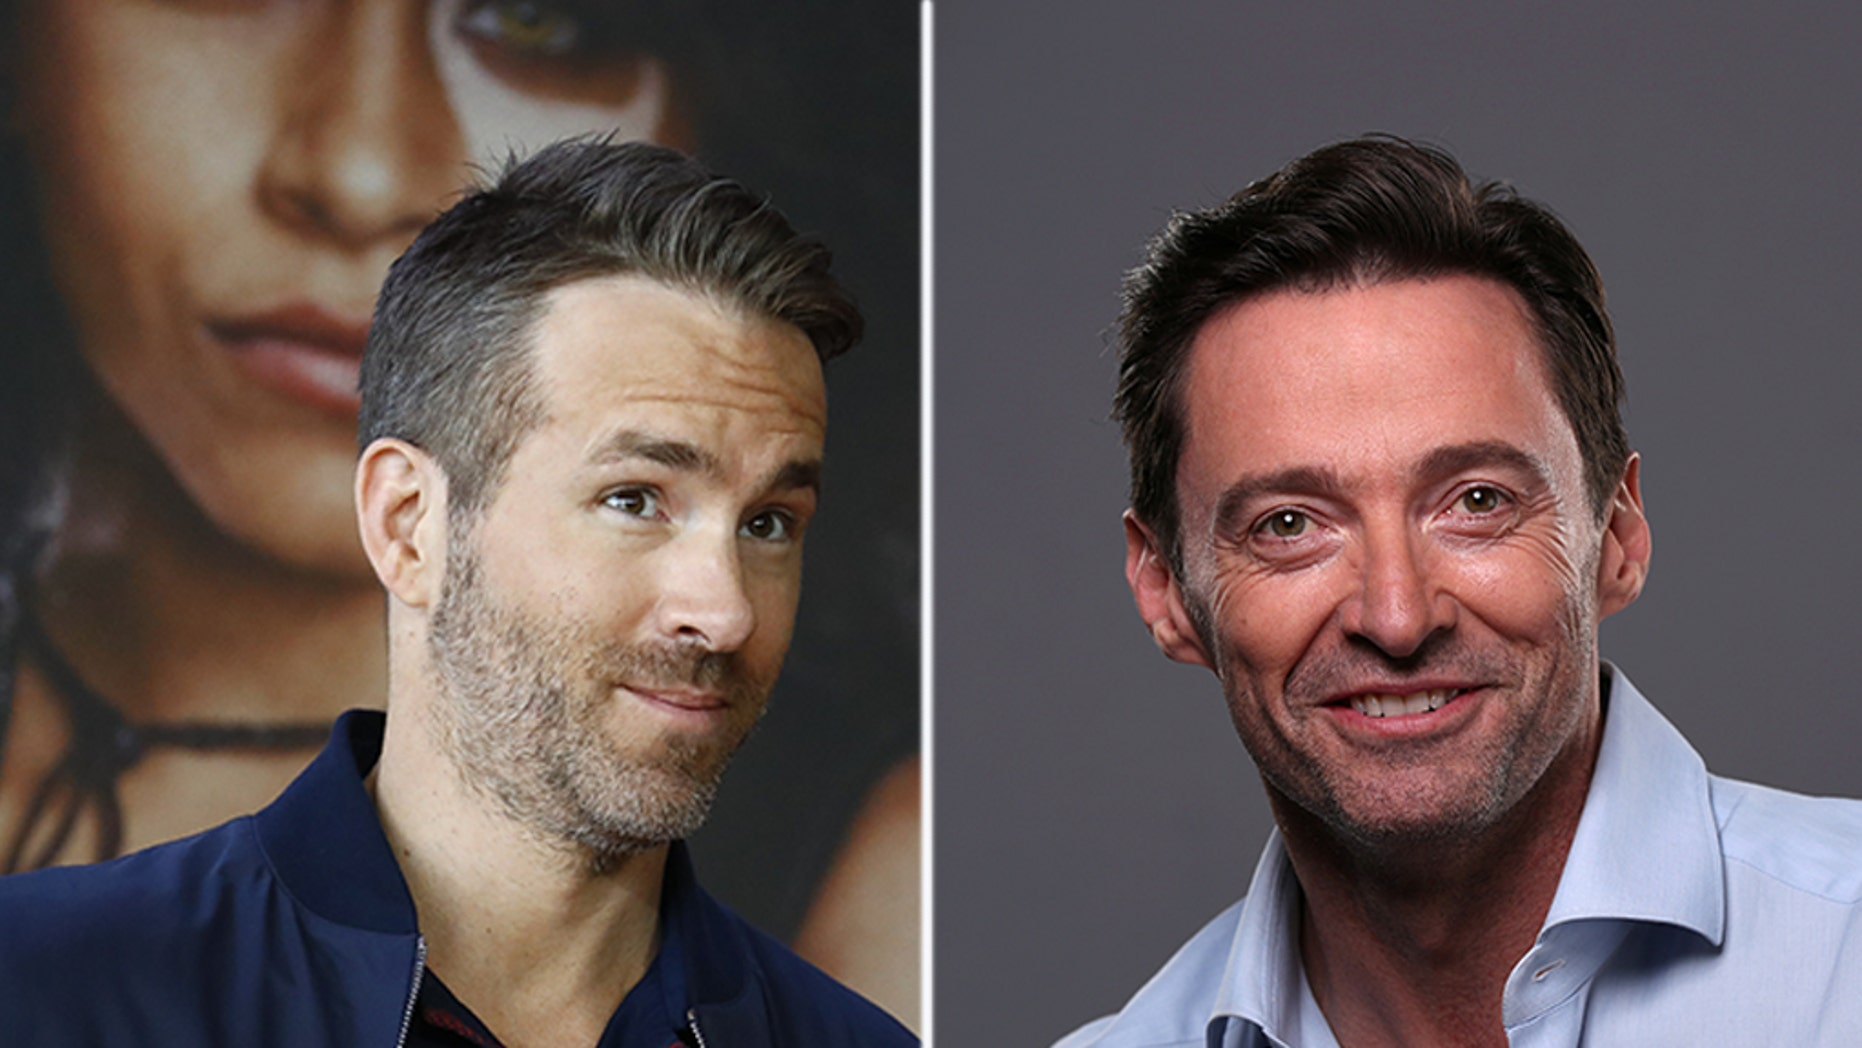 """Hugh Jackman once again appears to be a concentration of associate actor Ryan Reynolds' jokes, after a """"Deadpool"""" star expelled a ridicule domestic ad about him."""